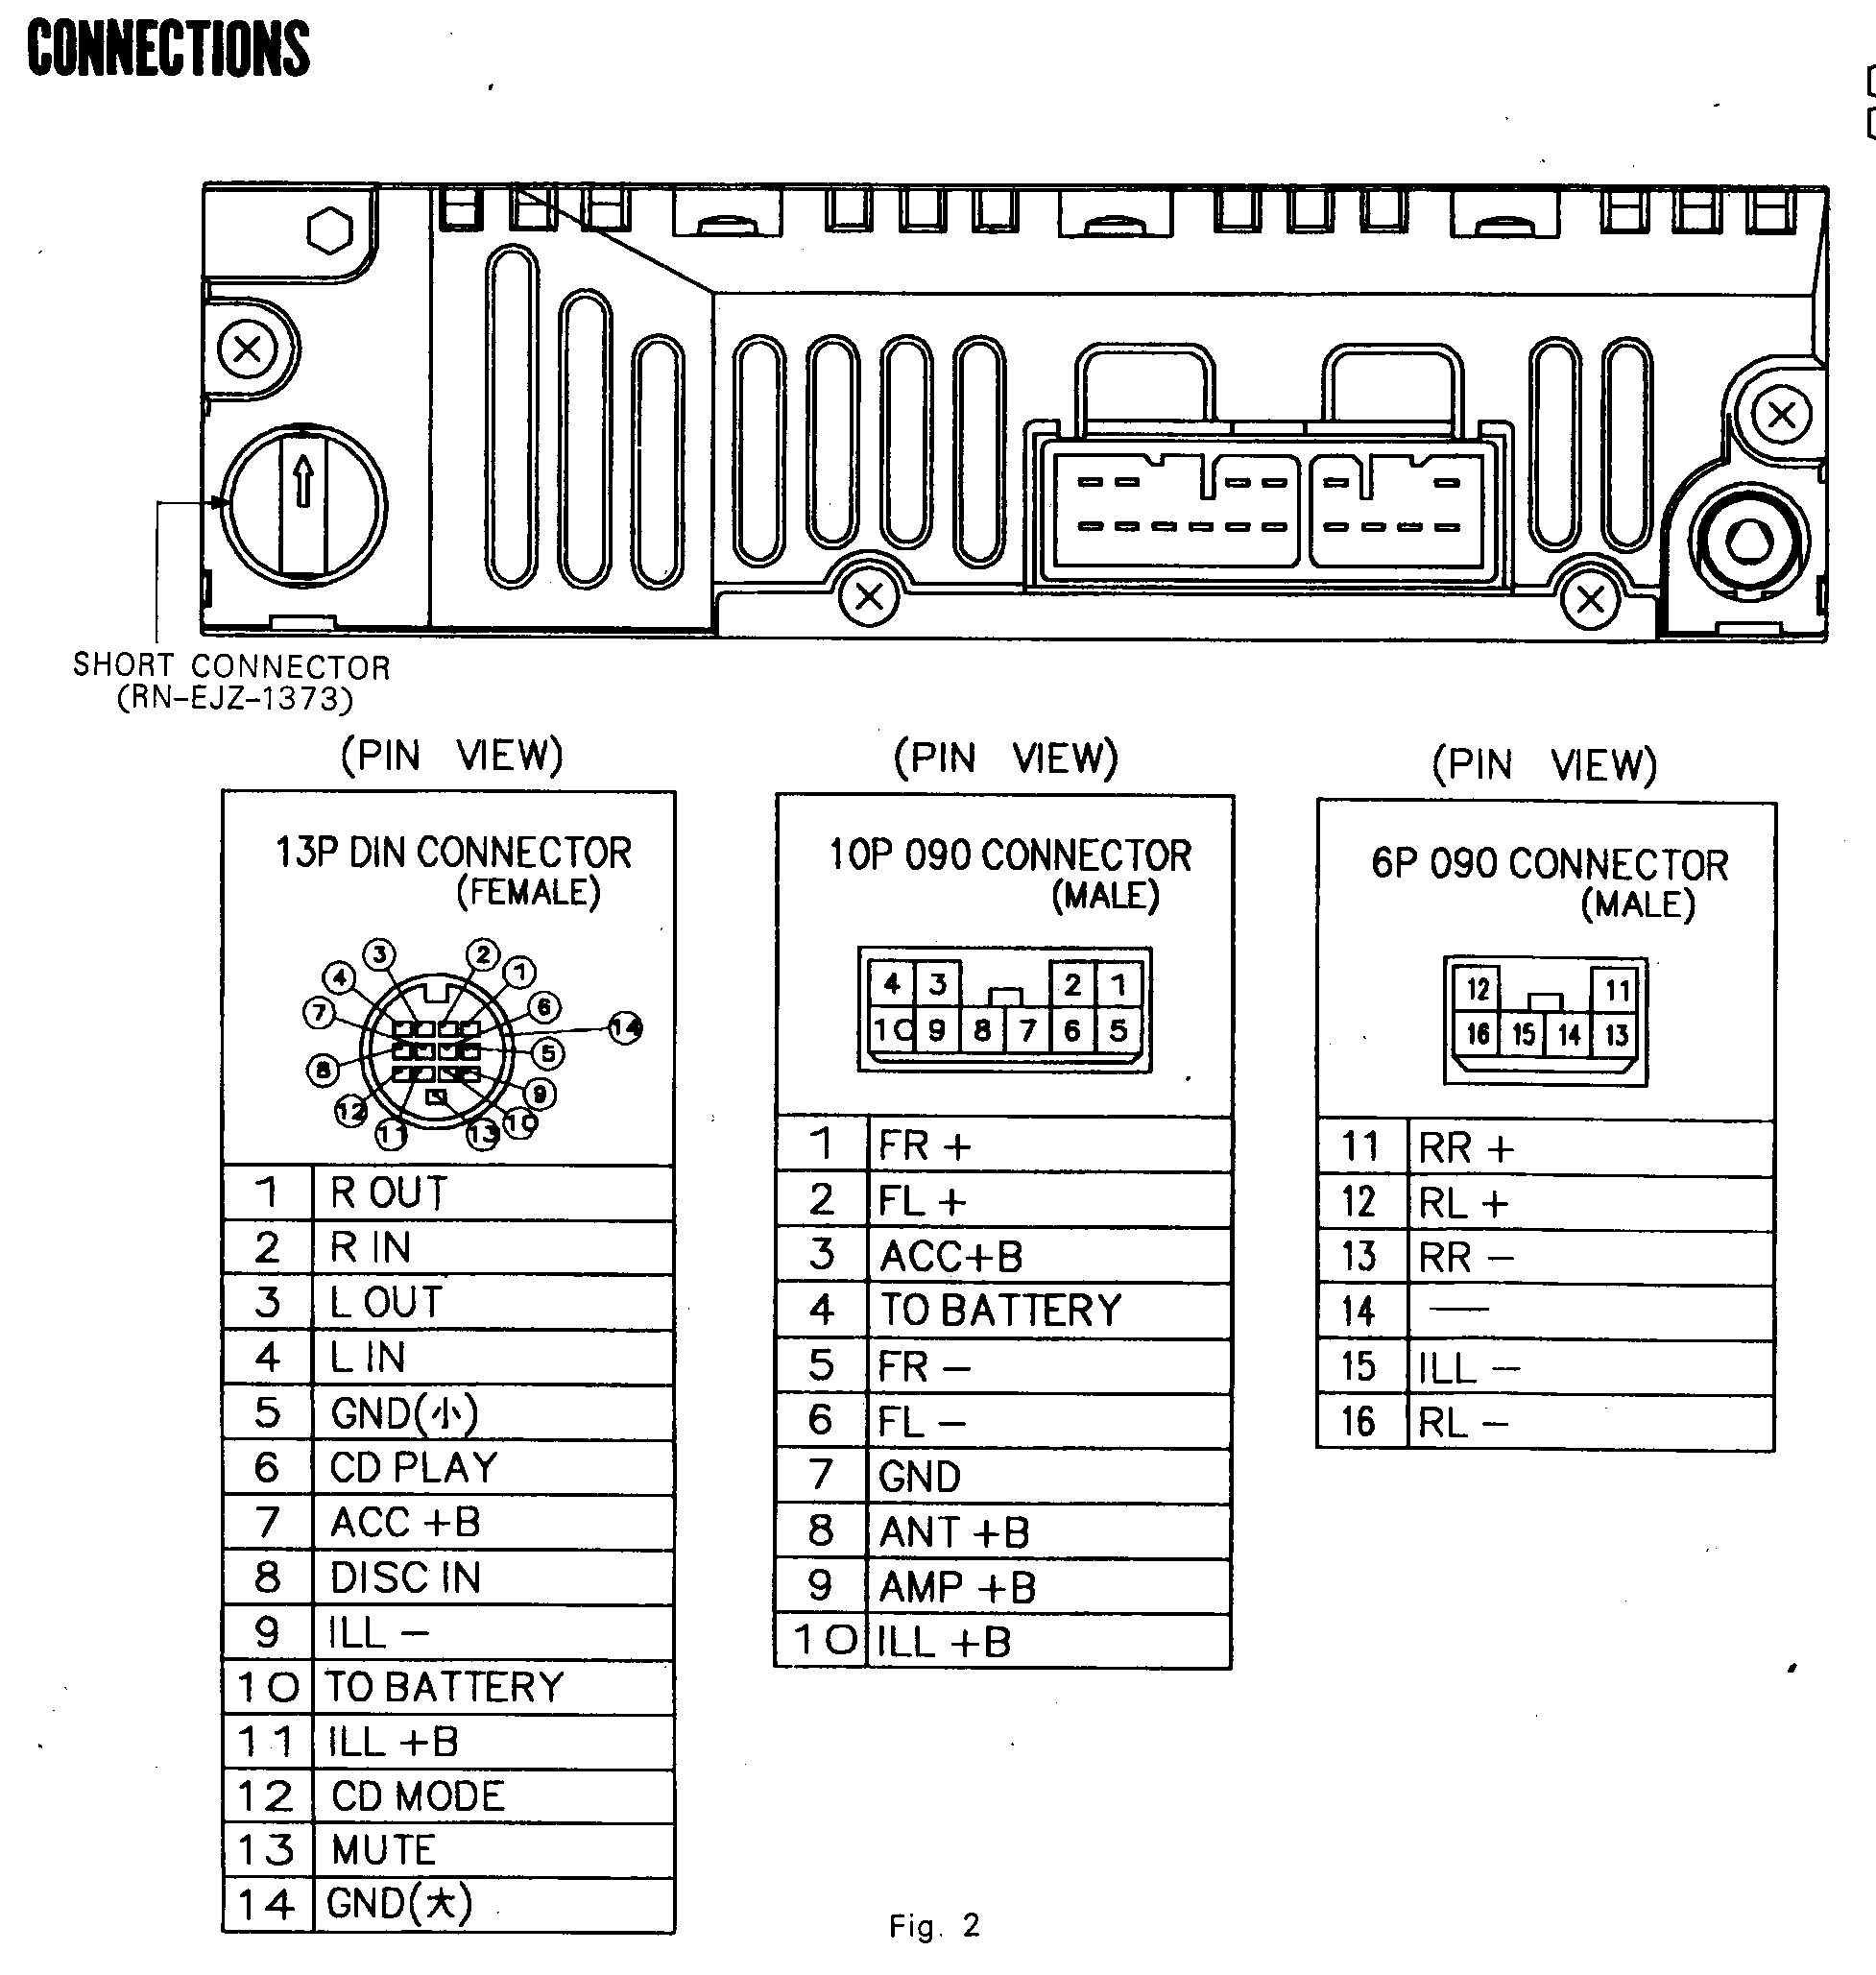 Car Stereo Wire Diagram Wiring Diagram for A Dual Car Stereo New Help toyota Coachedby Of Car Stereo Wire Diagram